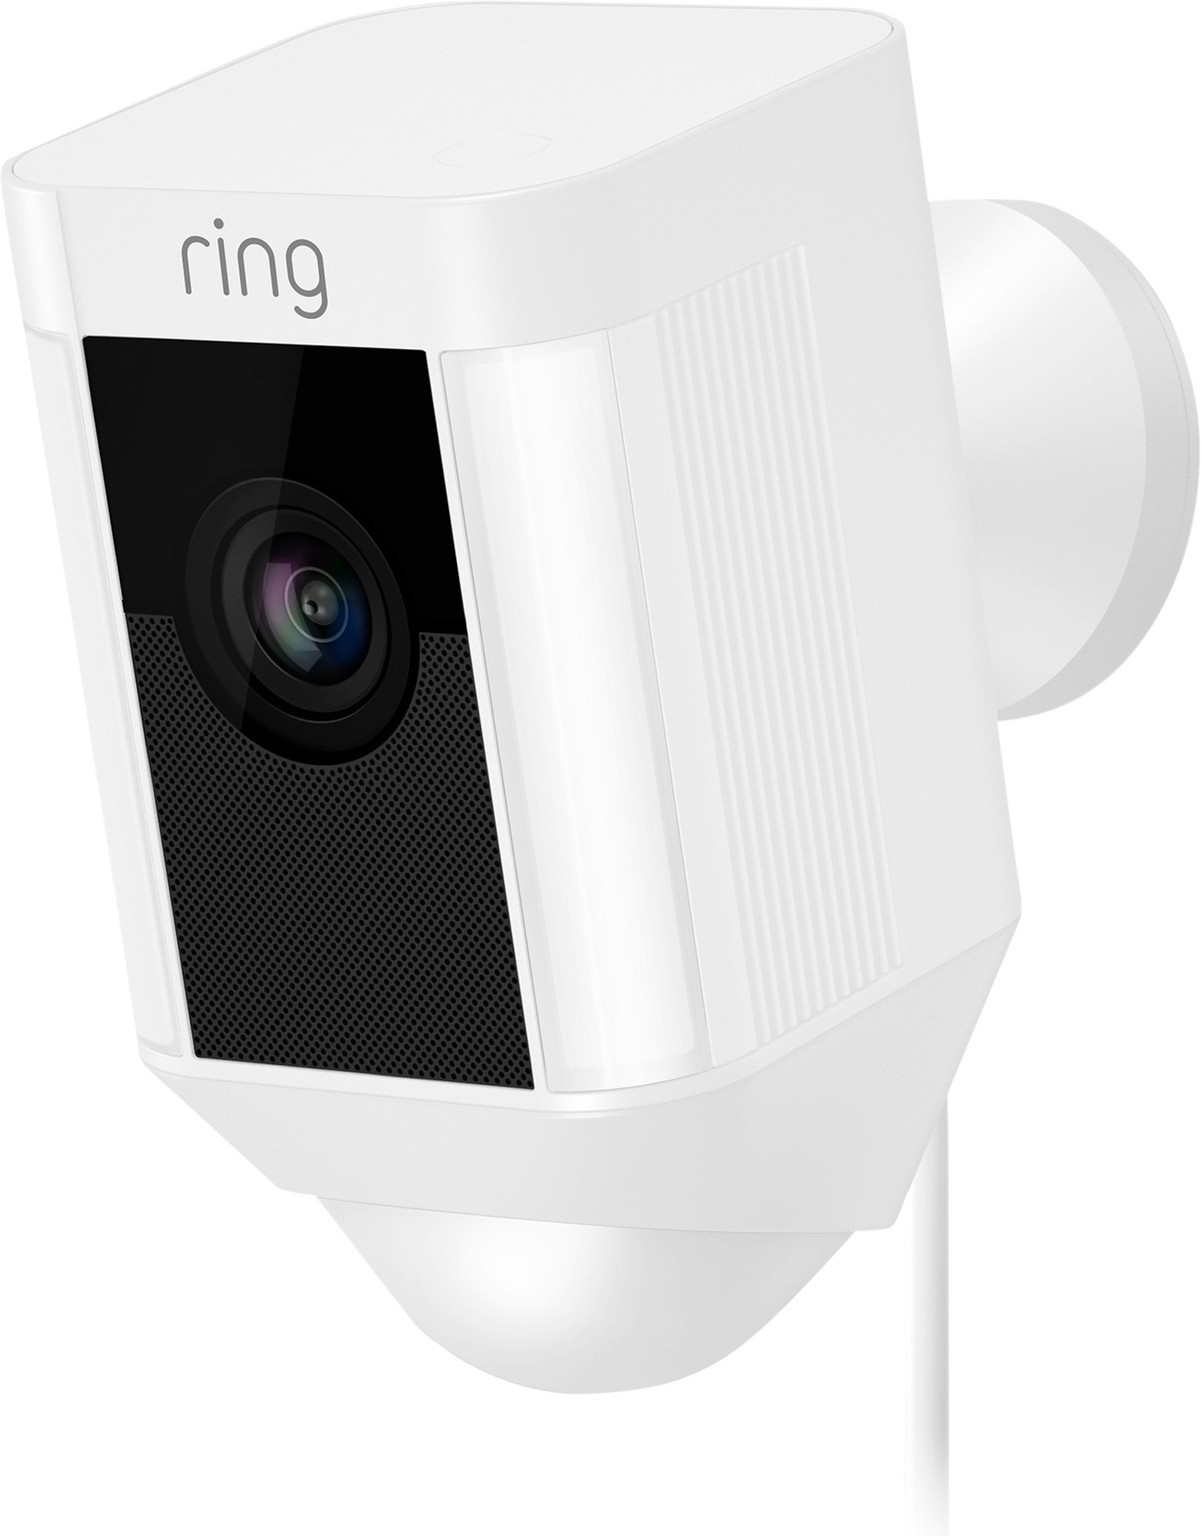 The Ring Spotlight Cam Wired White is an IP camera that monitors your backyard or driveway day and night. You install this camera easily with the clear app from Ring. The camera detects movements and automatically starts recording video and sound. The cam